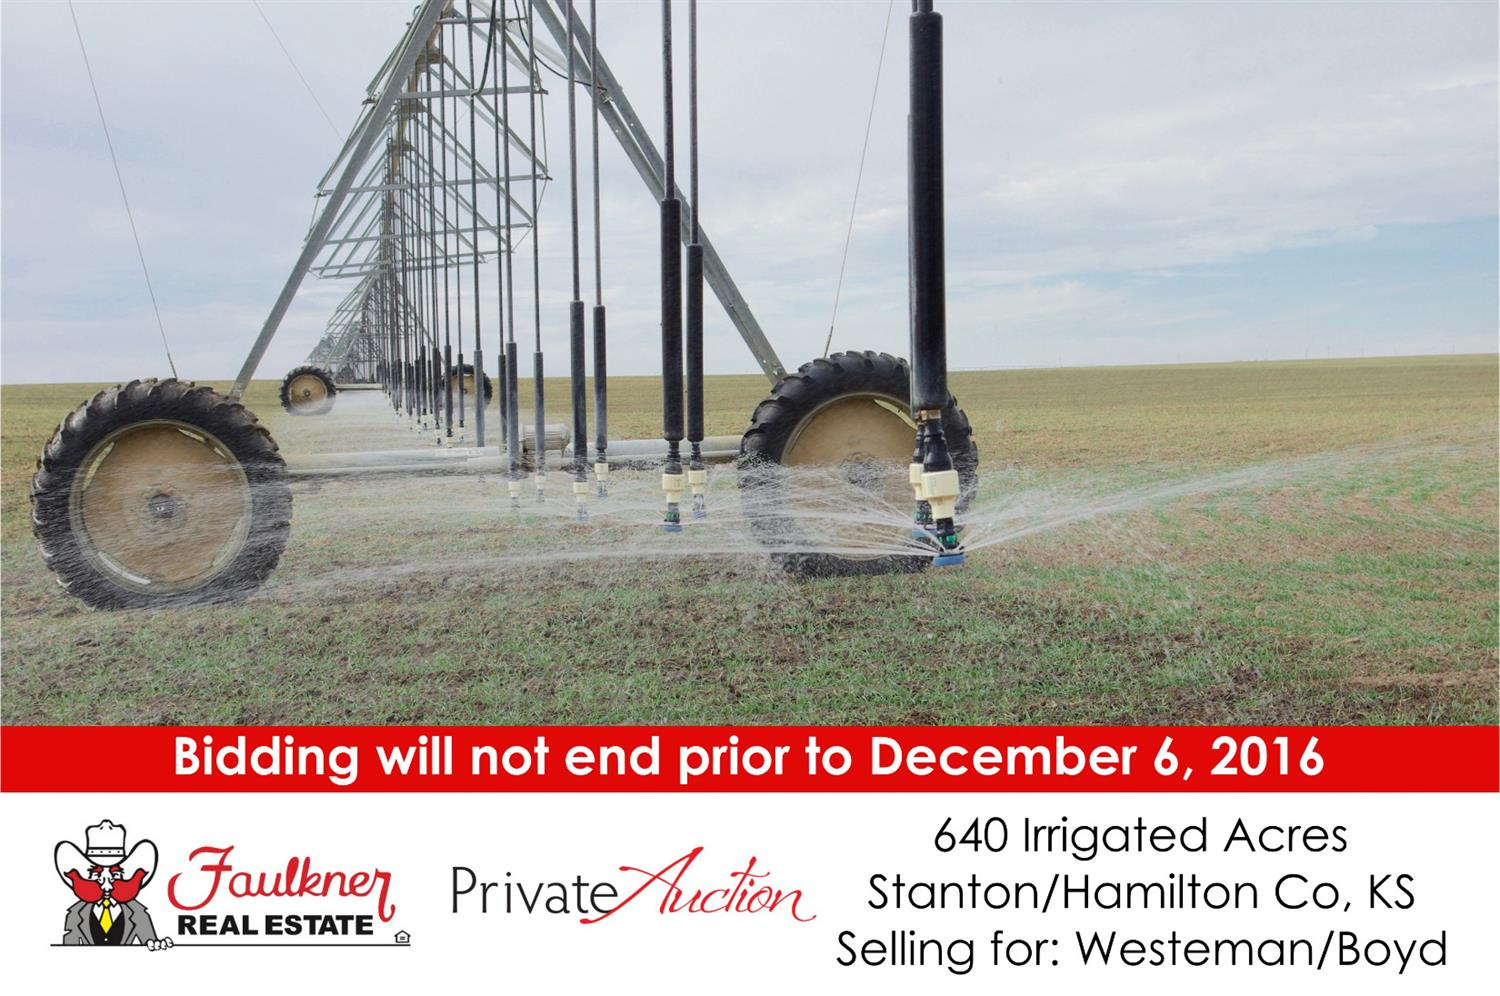 Kansas stanton county manter - 640 Acres Of Nice Irrigated Farmland For Sale By Private Auction In Stanton And Hamilton County Kansas Near The County Line This Farm Is Selling With All